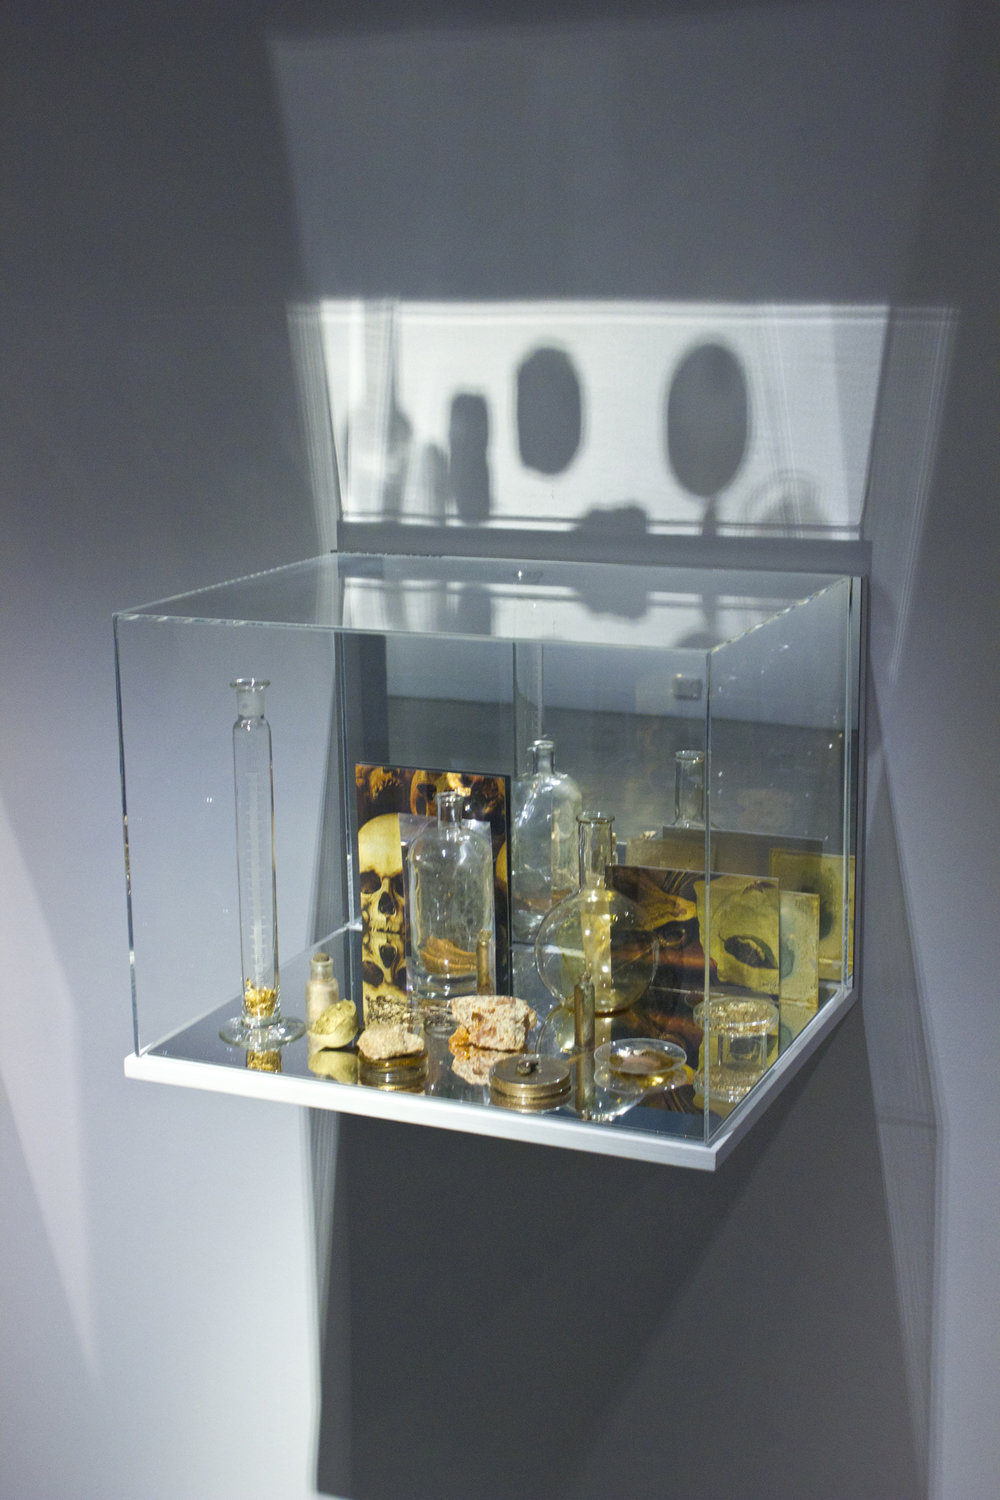 JANET LAURENCE   What Colour is the Sacred? (Gold)  2018 Plywood, acrylic, mirror, details of Aelbert Jansz van der Schoor 'Vanitas still life', c1660–65 printed on archival cotton rag with ultra chrome pigment inks, Oil glaze on acrylic, pigment, acrylic lens, scientific glass, gold leaf, ochre, copper, colophony, guided objects 45 x 60 x 45 cm